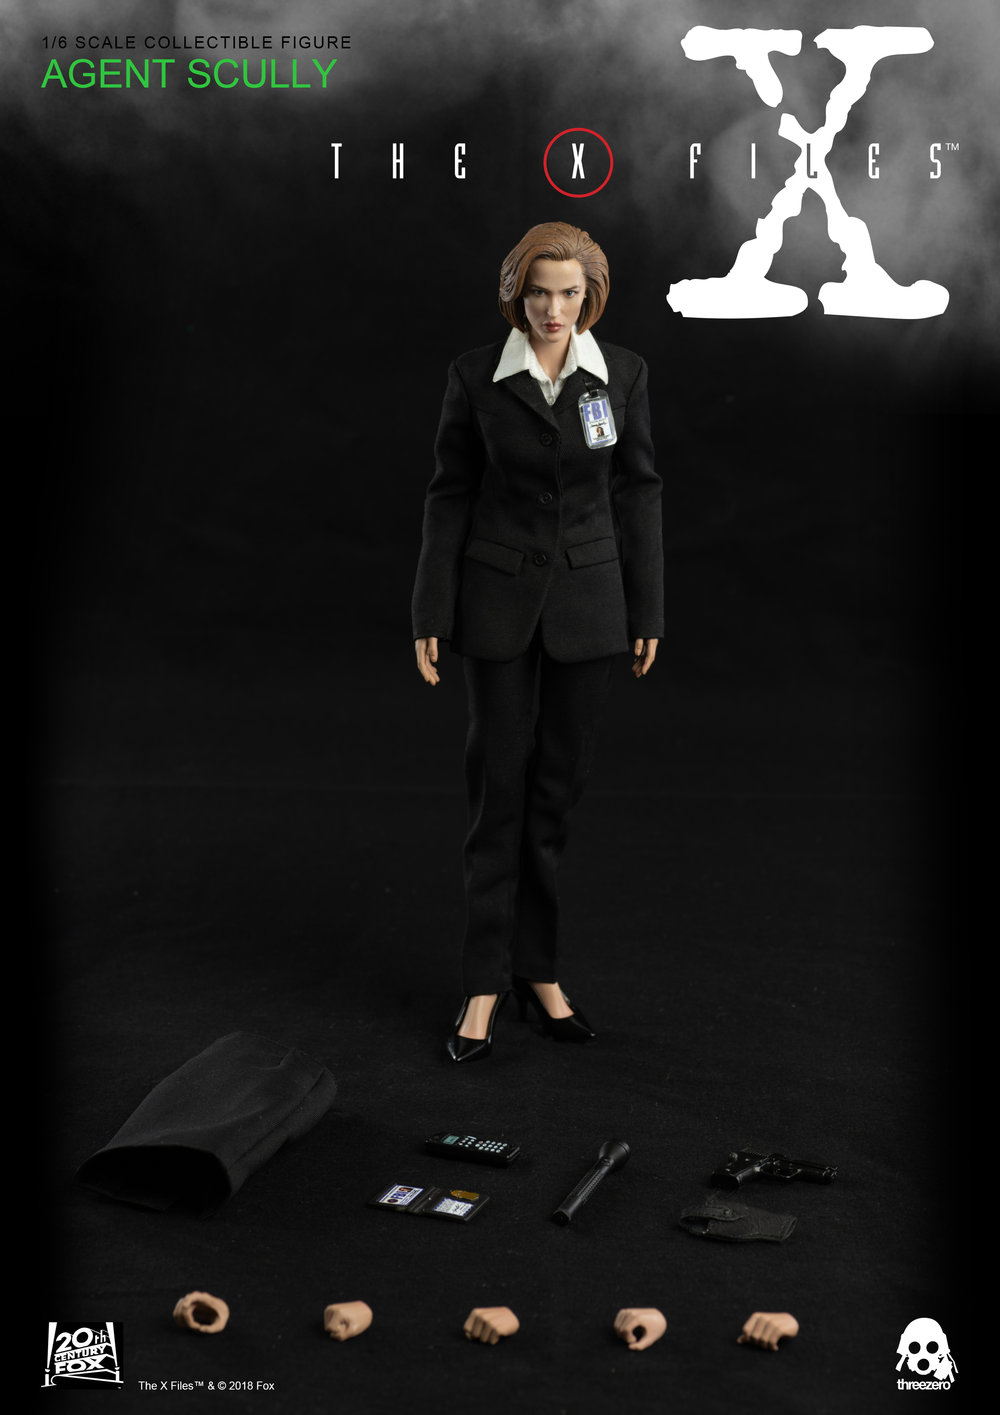 Xfile_Scully_00381.jpg